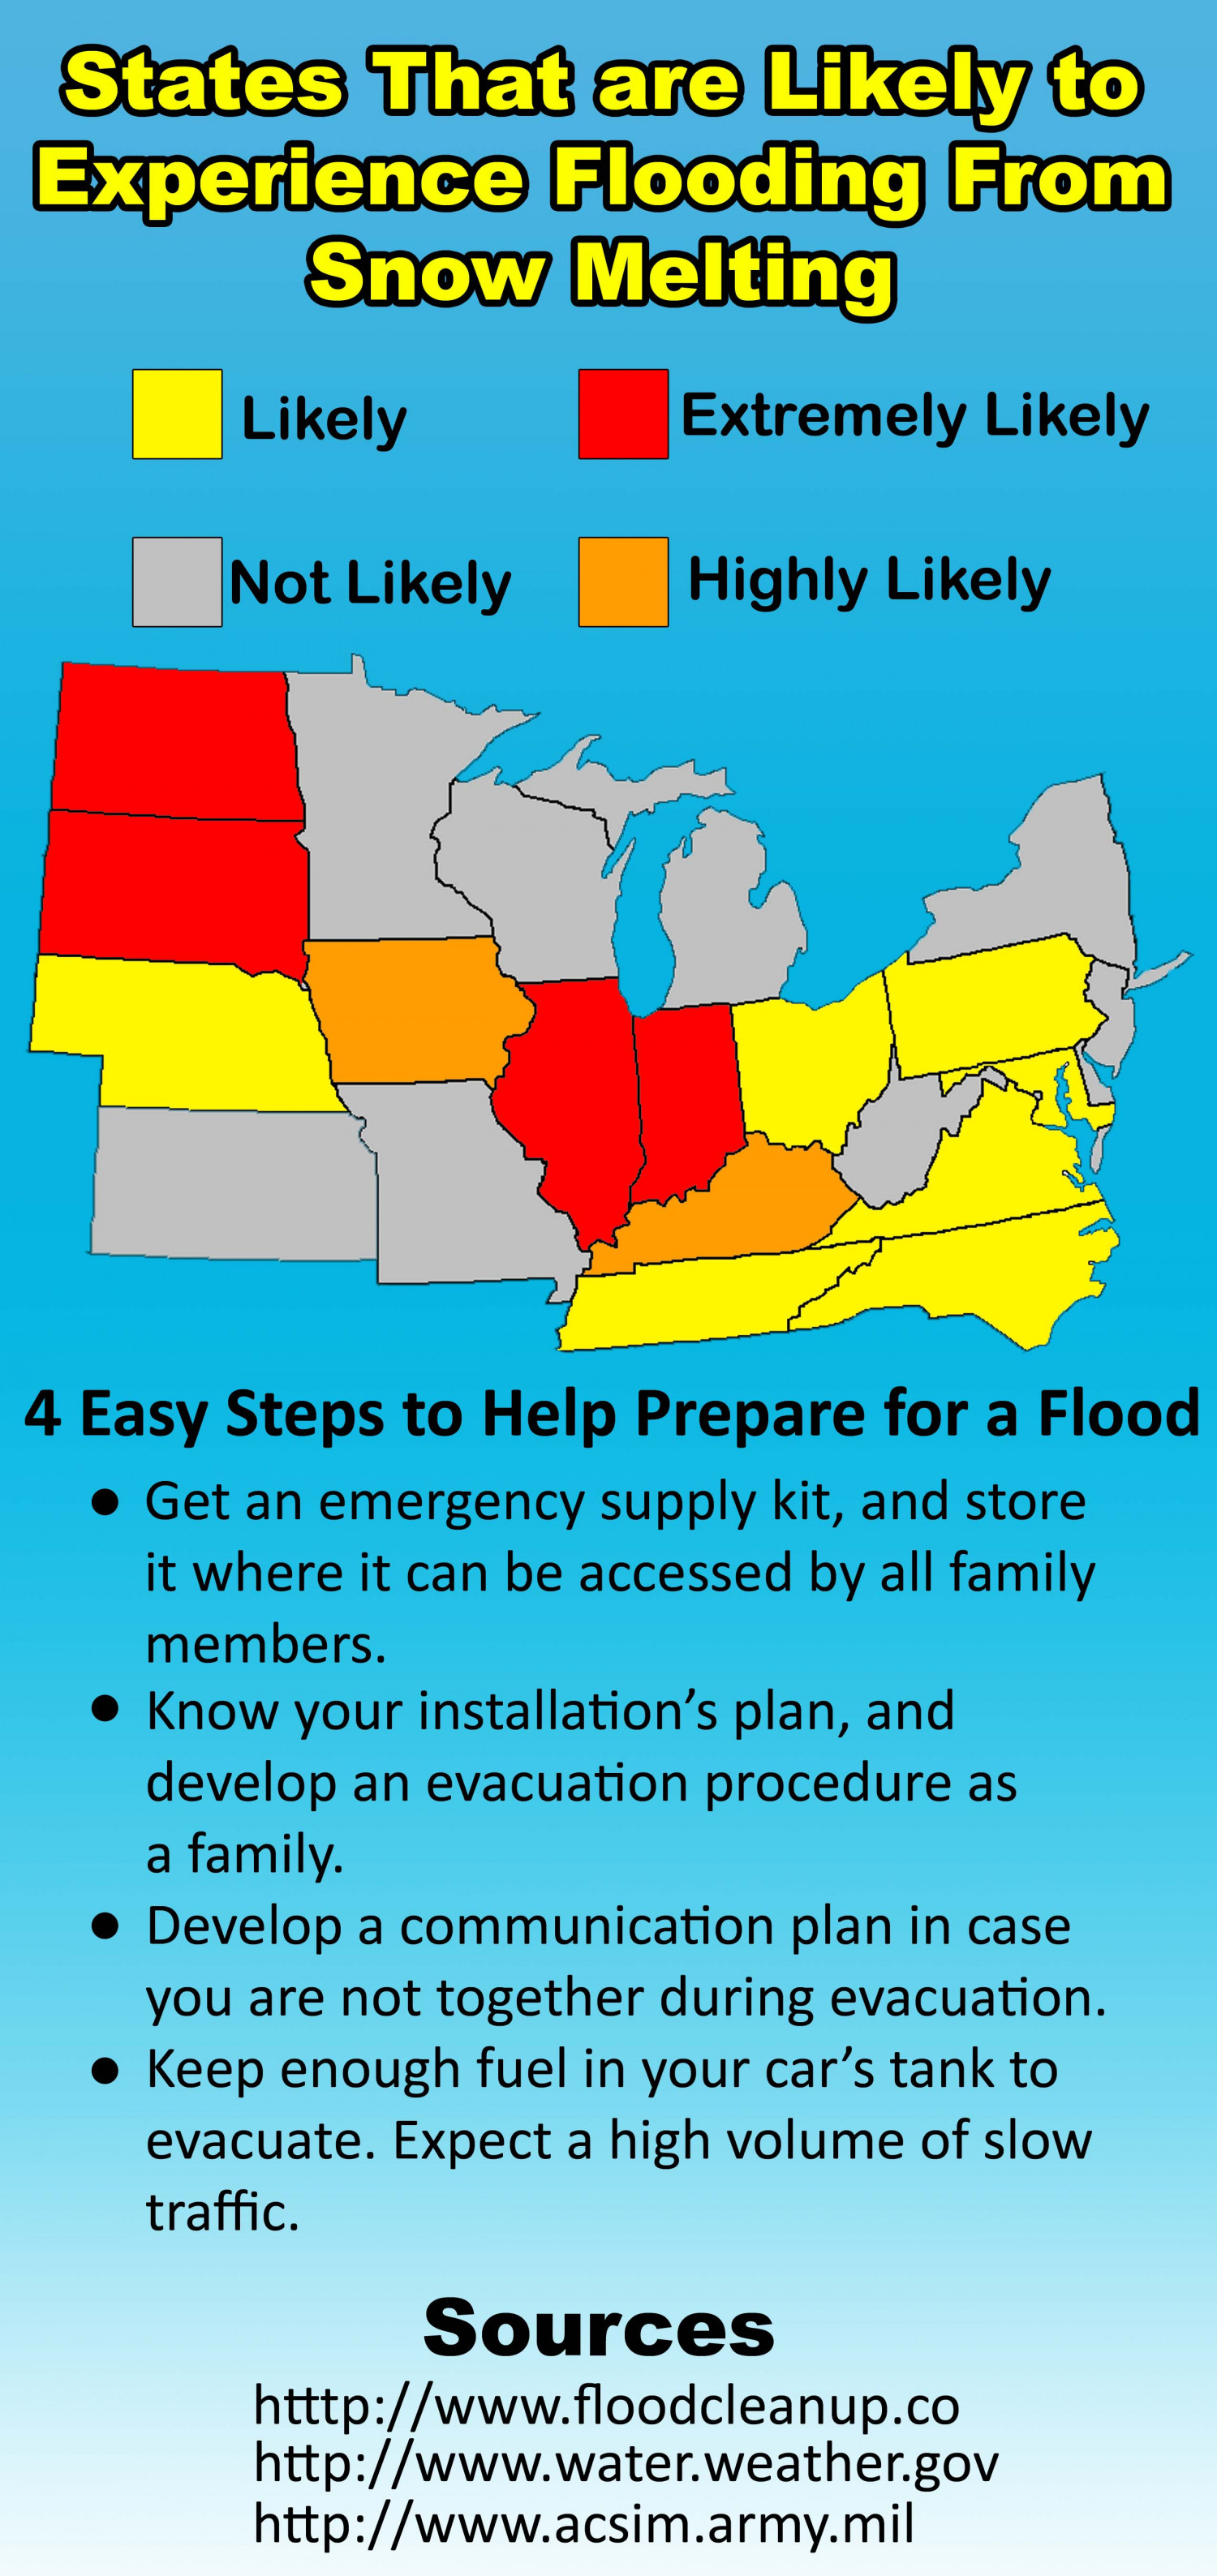 States That Will Likely Experience Flooding from Snowmelt Infographic